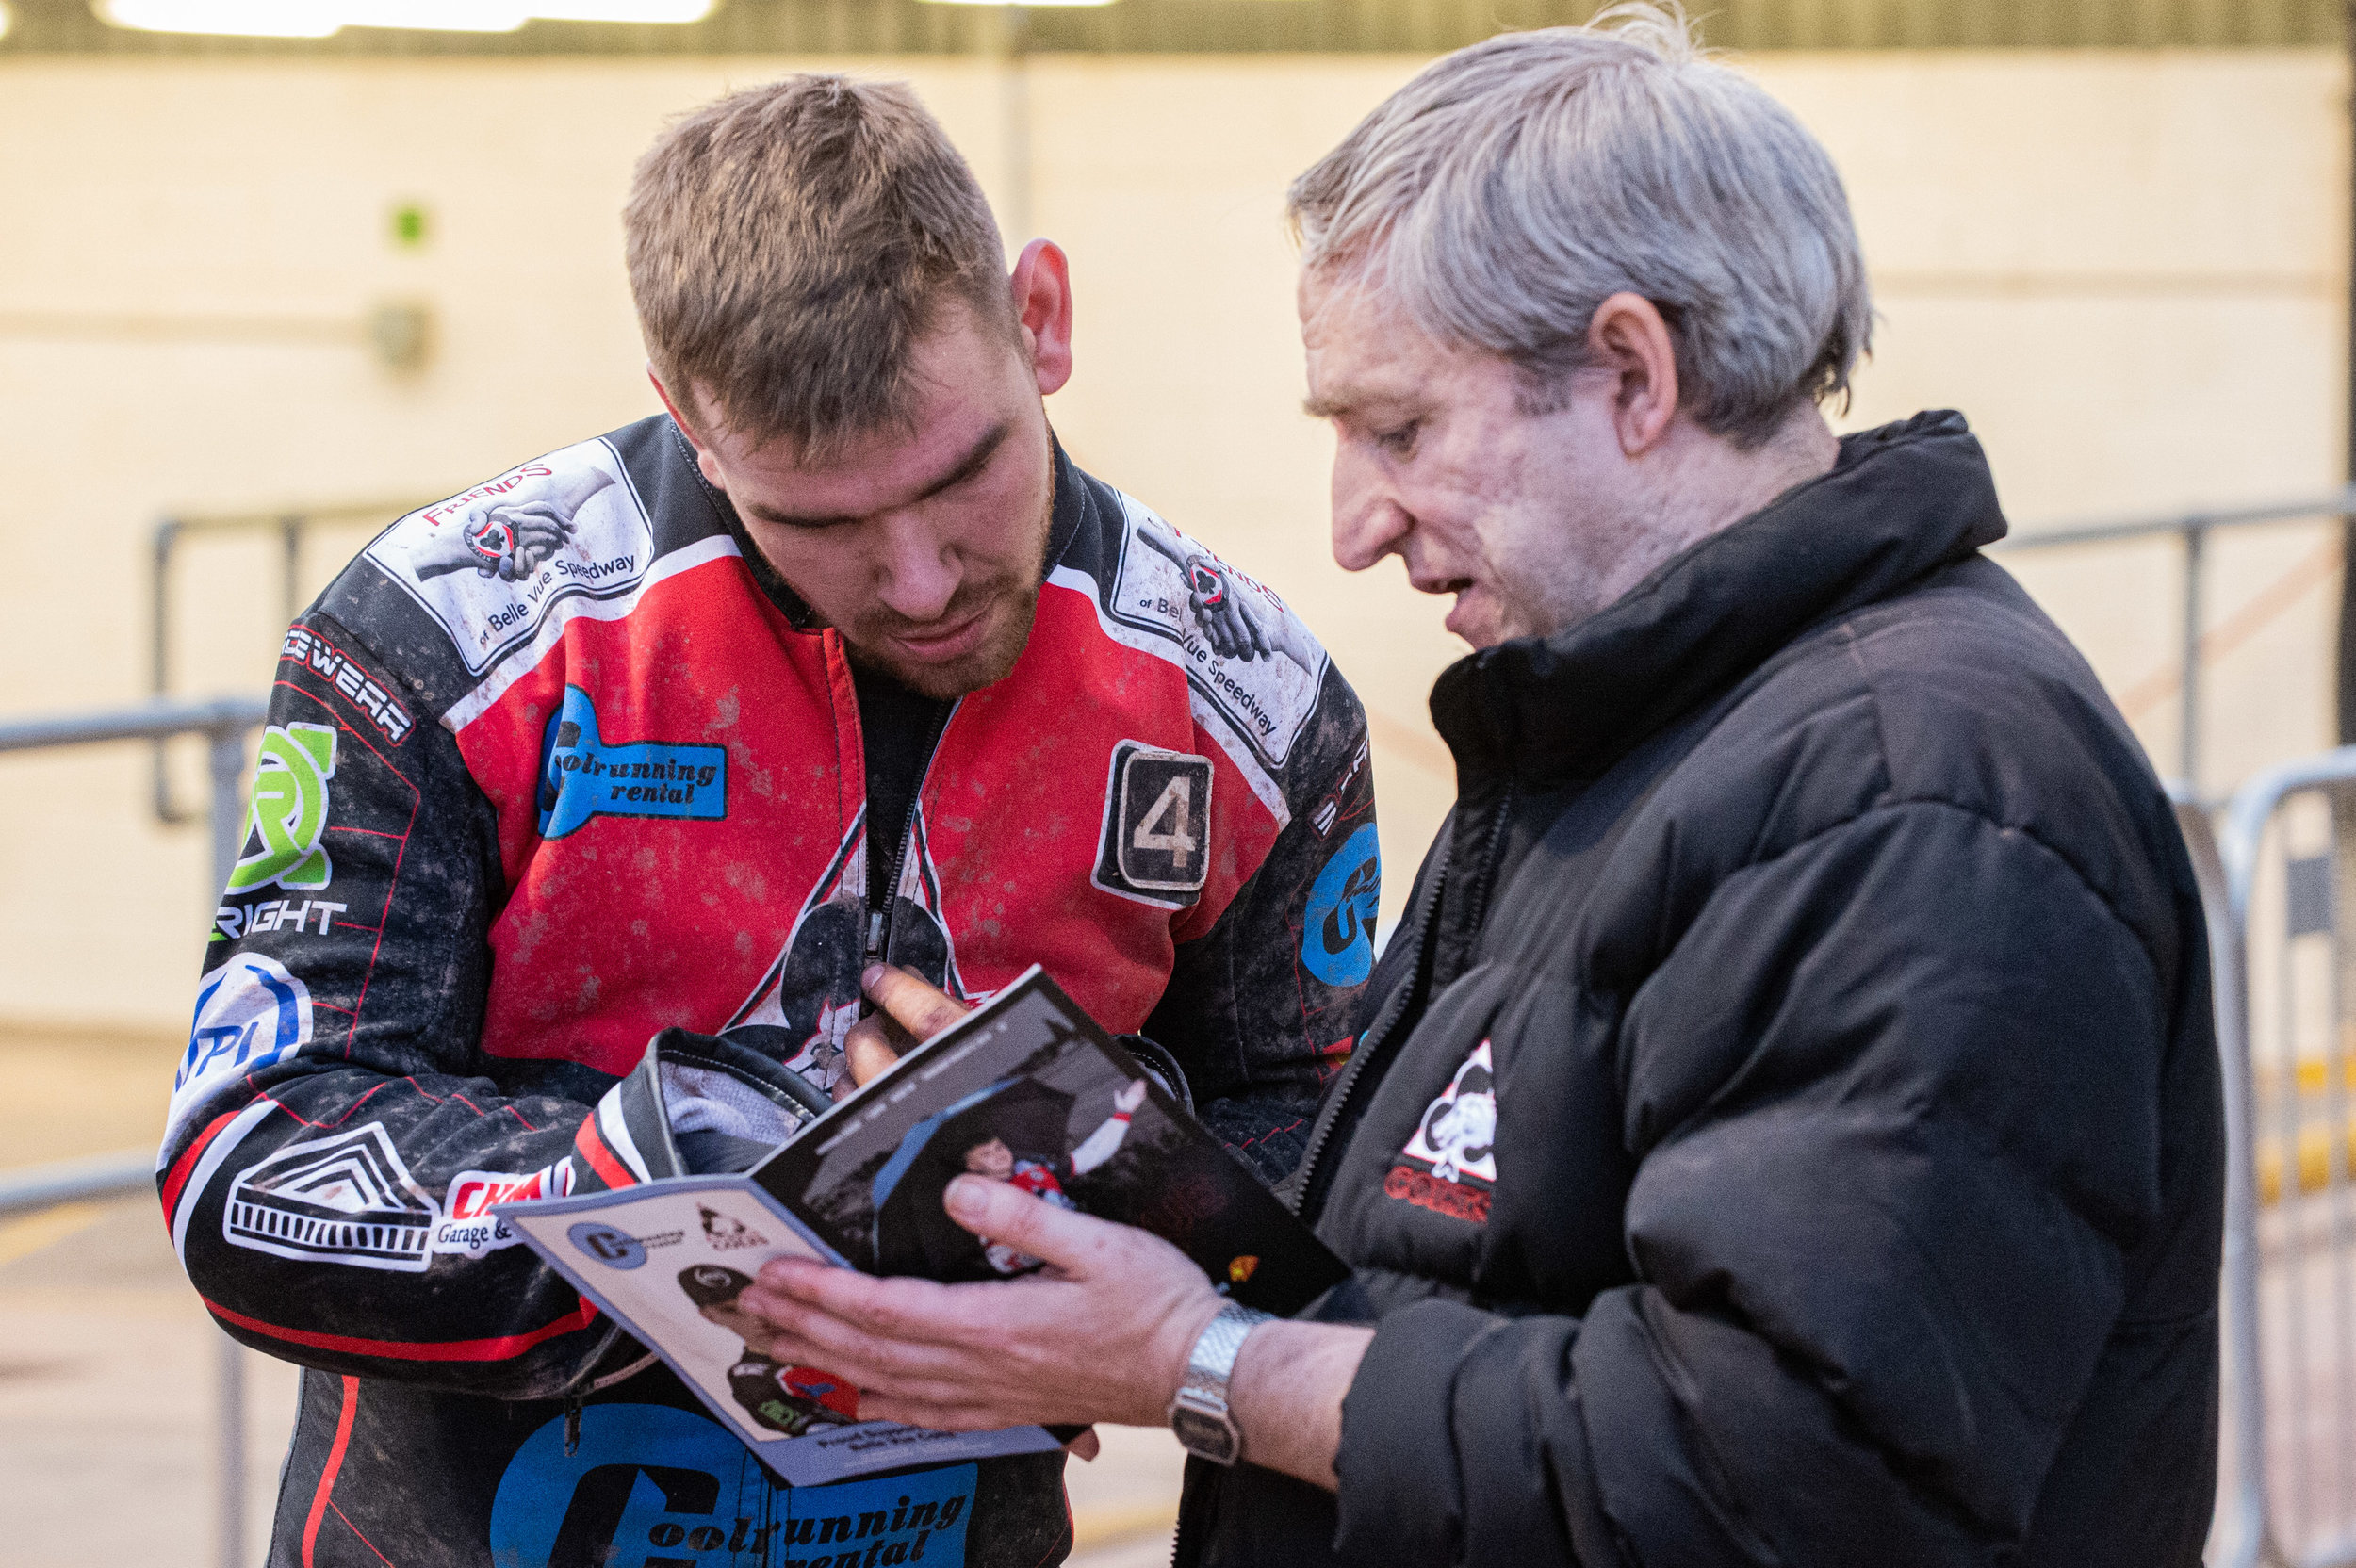 It's a big night for Belle Vue as they travel to Sittingbourne, Kent